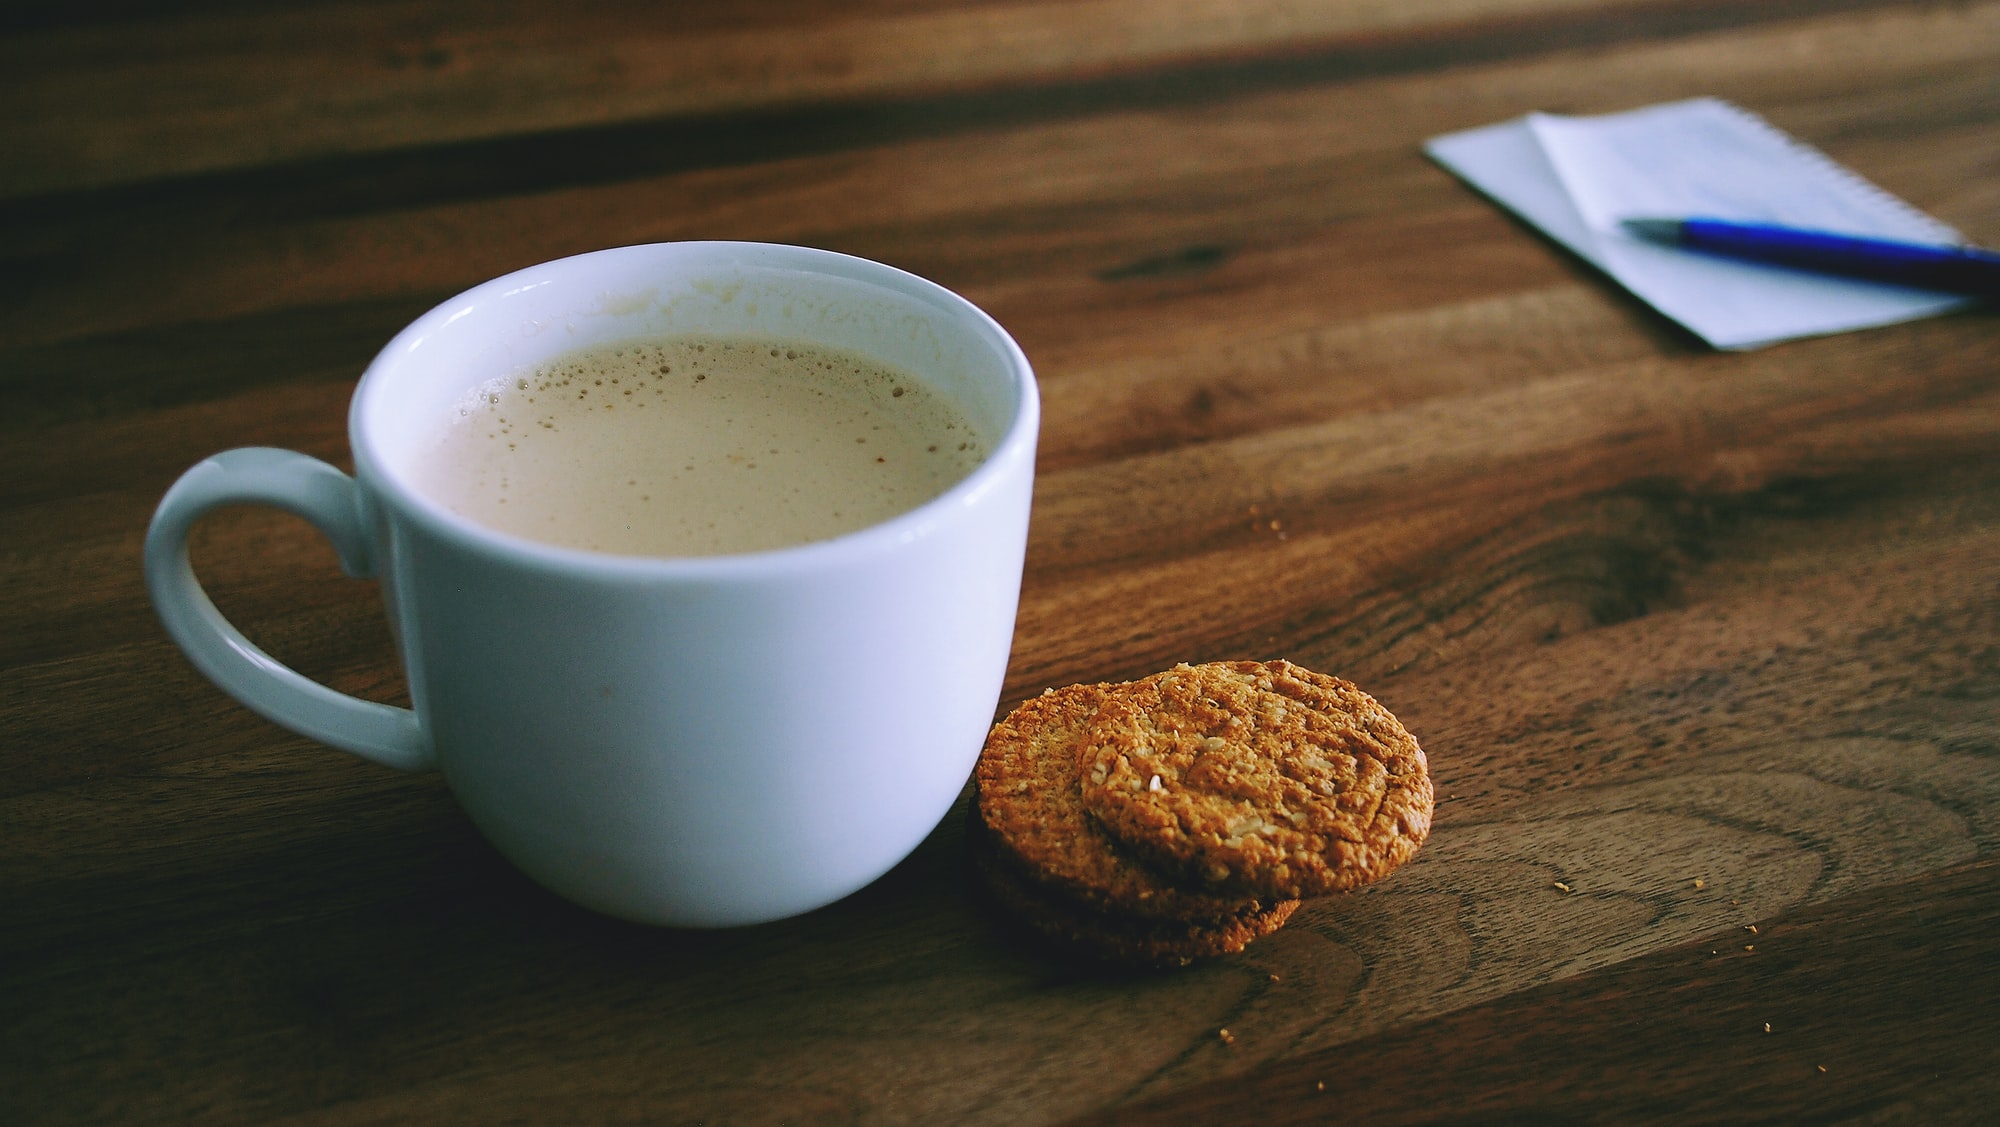 Coffee mug and biscuit